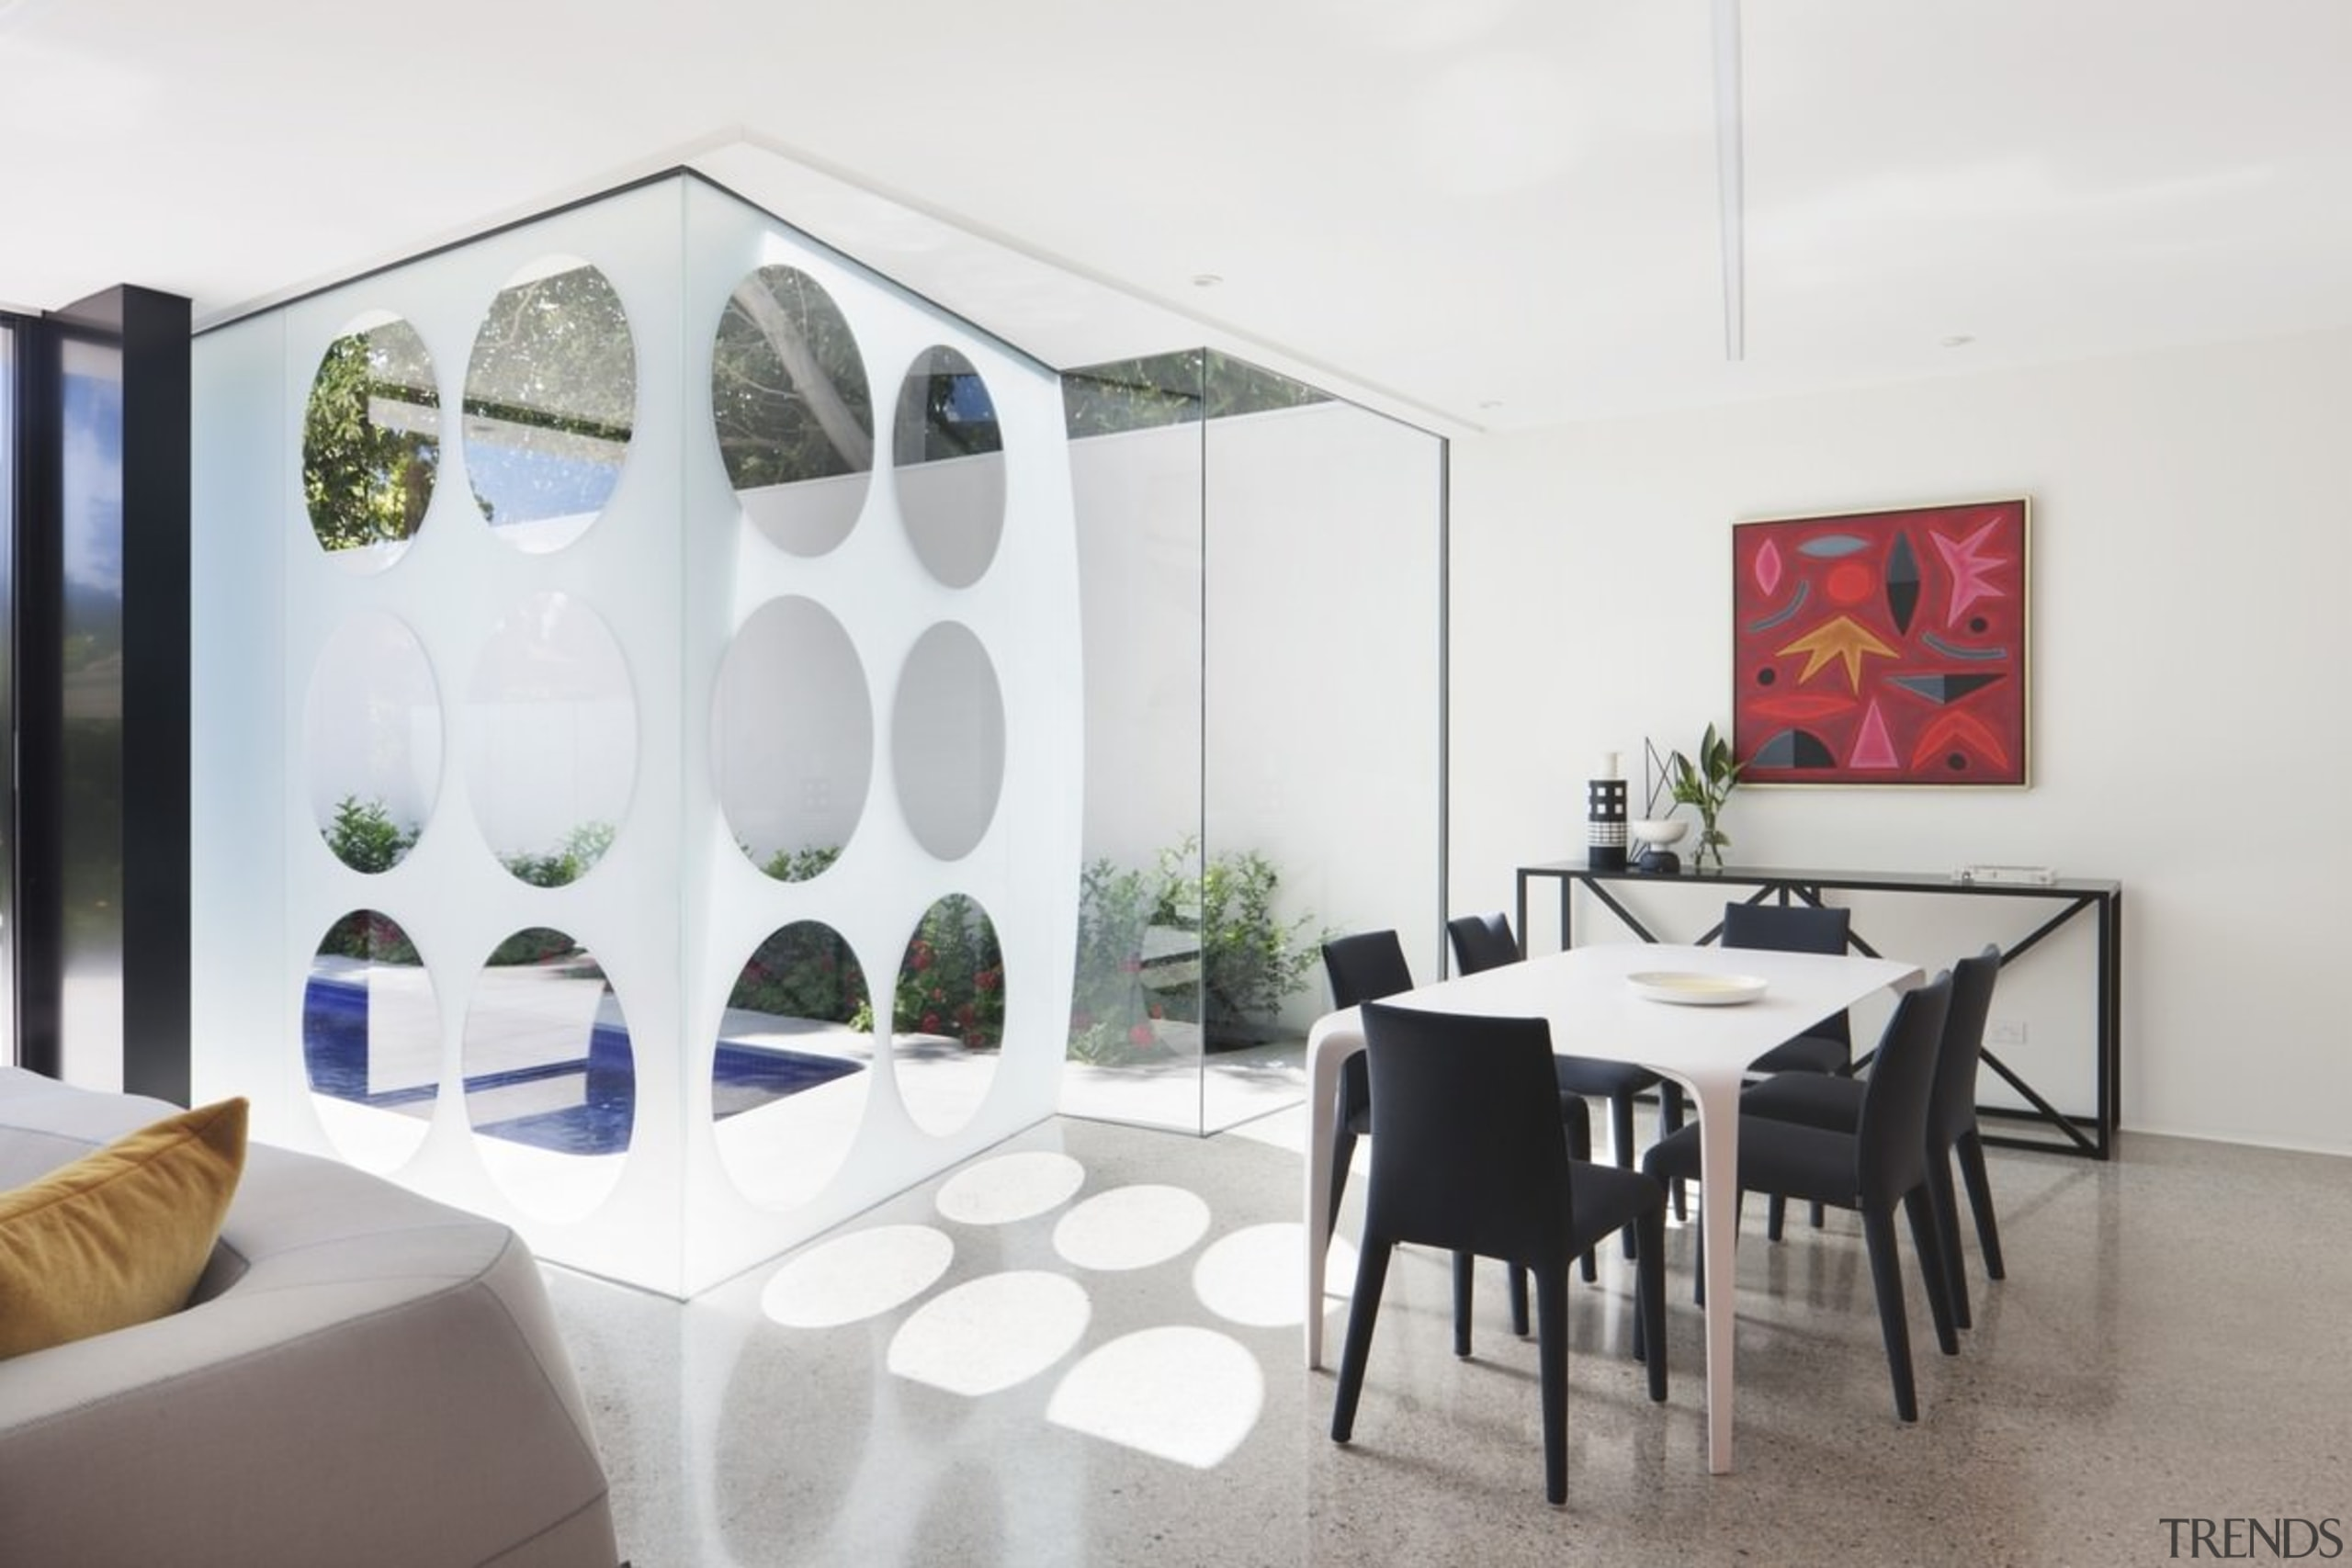 Architect: Gray PuksandPhotography by Shannon McGrath interior design, product design, property, real estate, table, white